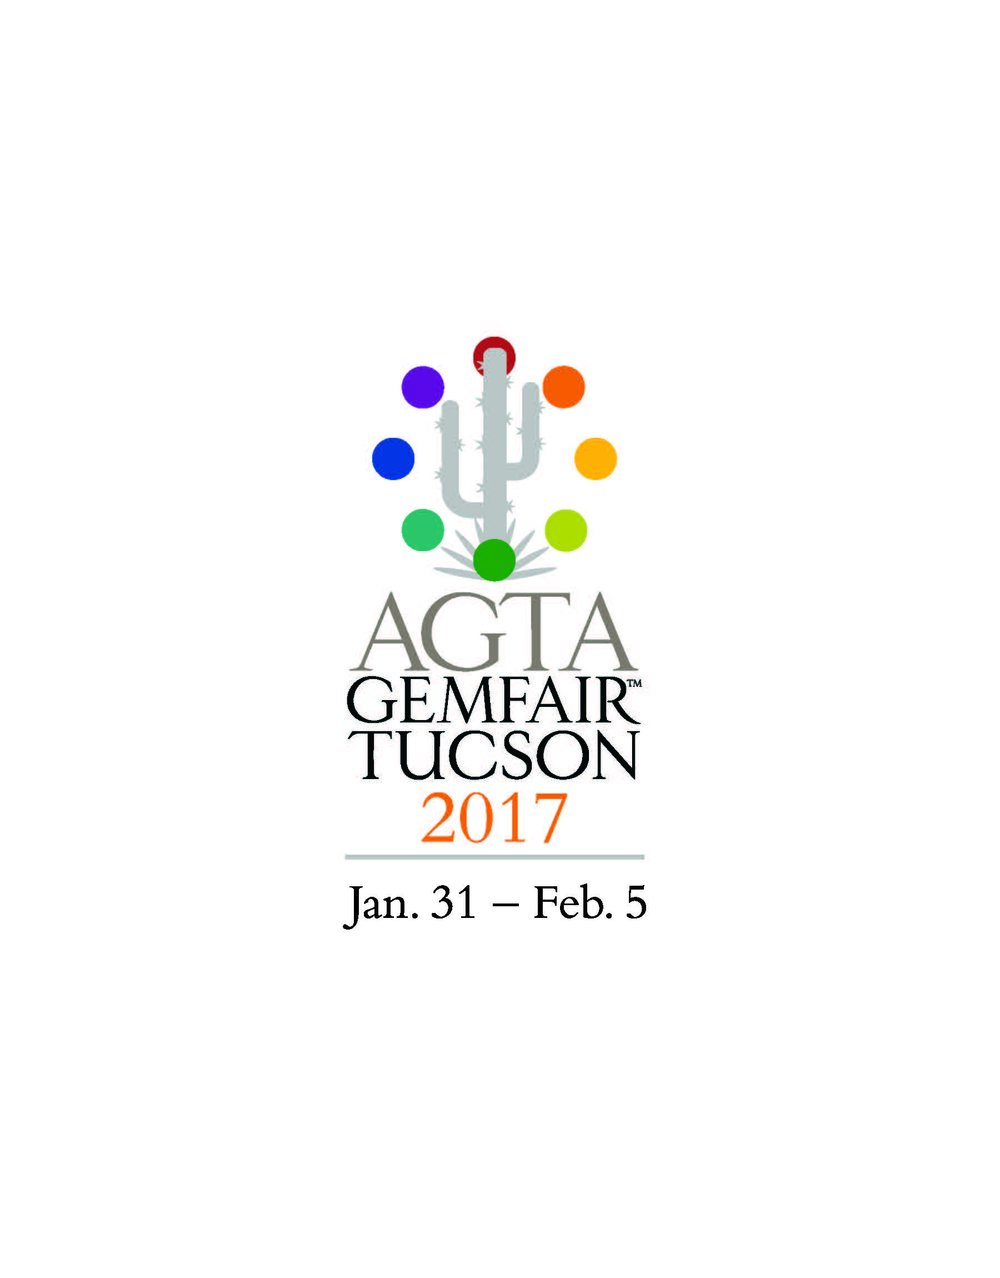 2017 AGTA Gemfair Tucson Logo_stacked-dates.jpg